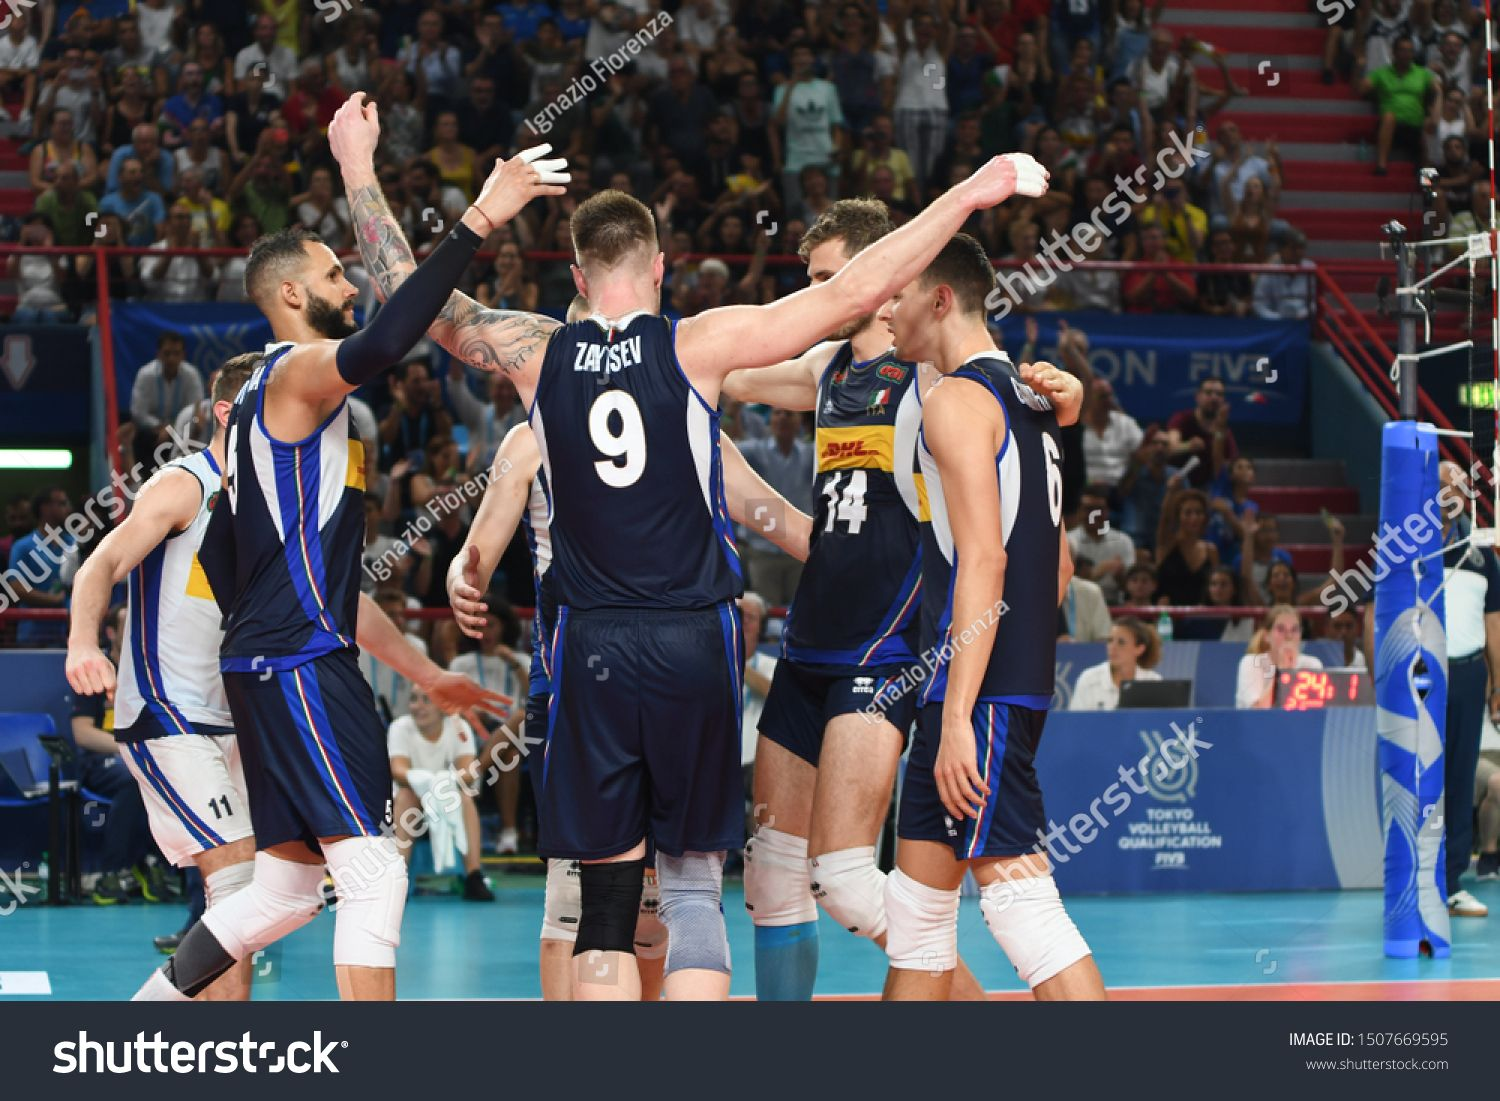 Bari Italy 11 August 2019 The Italian National Volleyball Team During The Men S Qualifying Tournament In Tokyo 2020 Volleyball Team Tokyo 2020 Volleyball